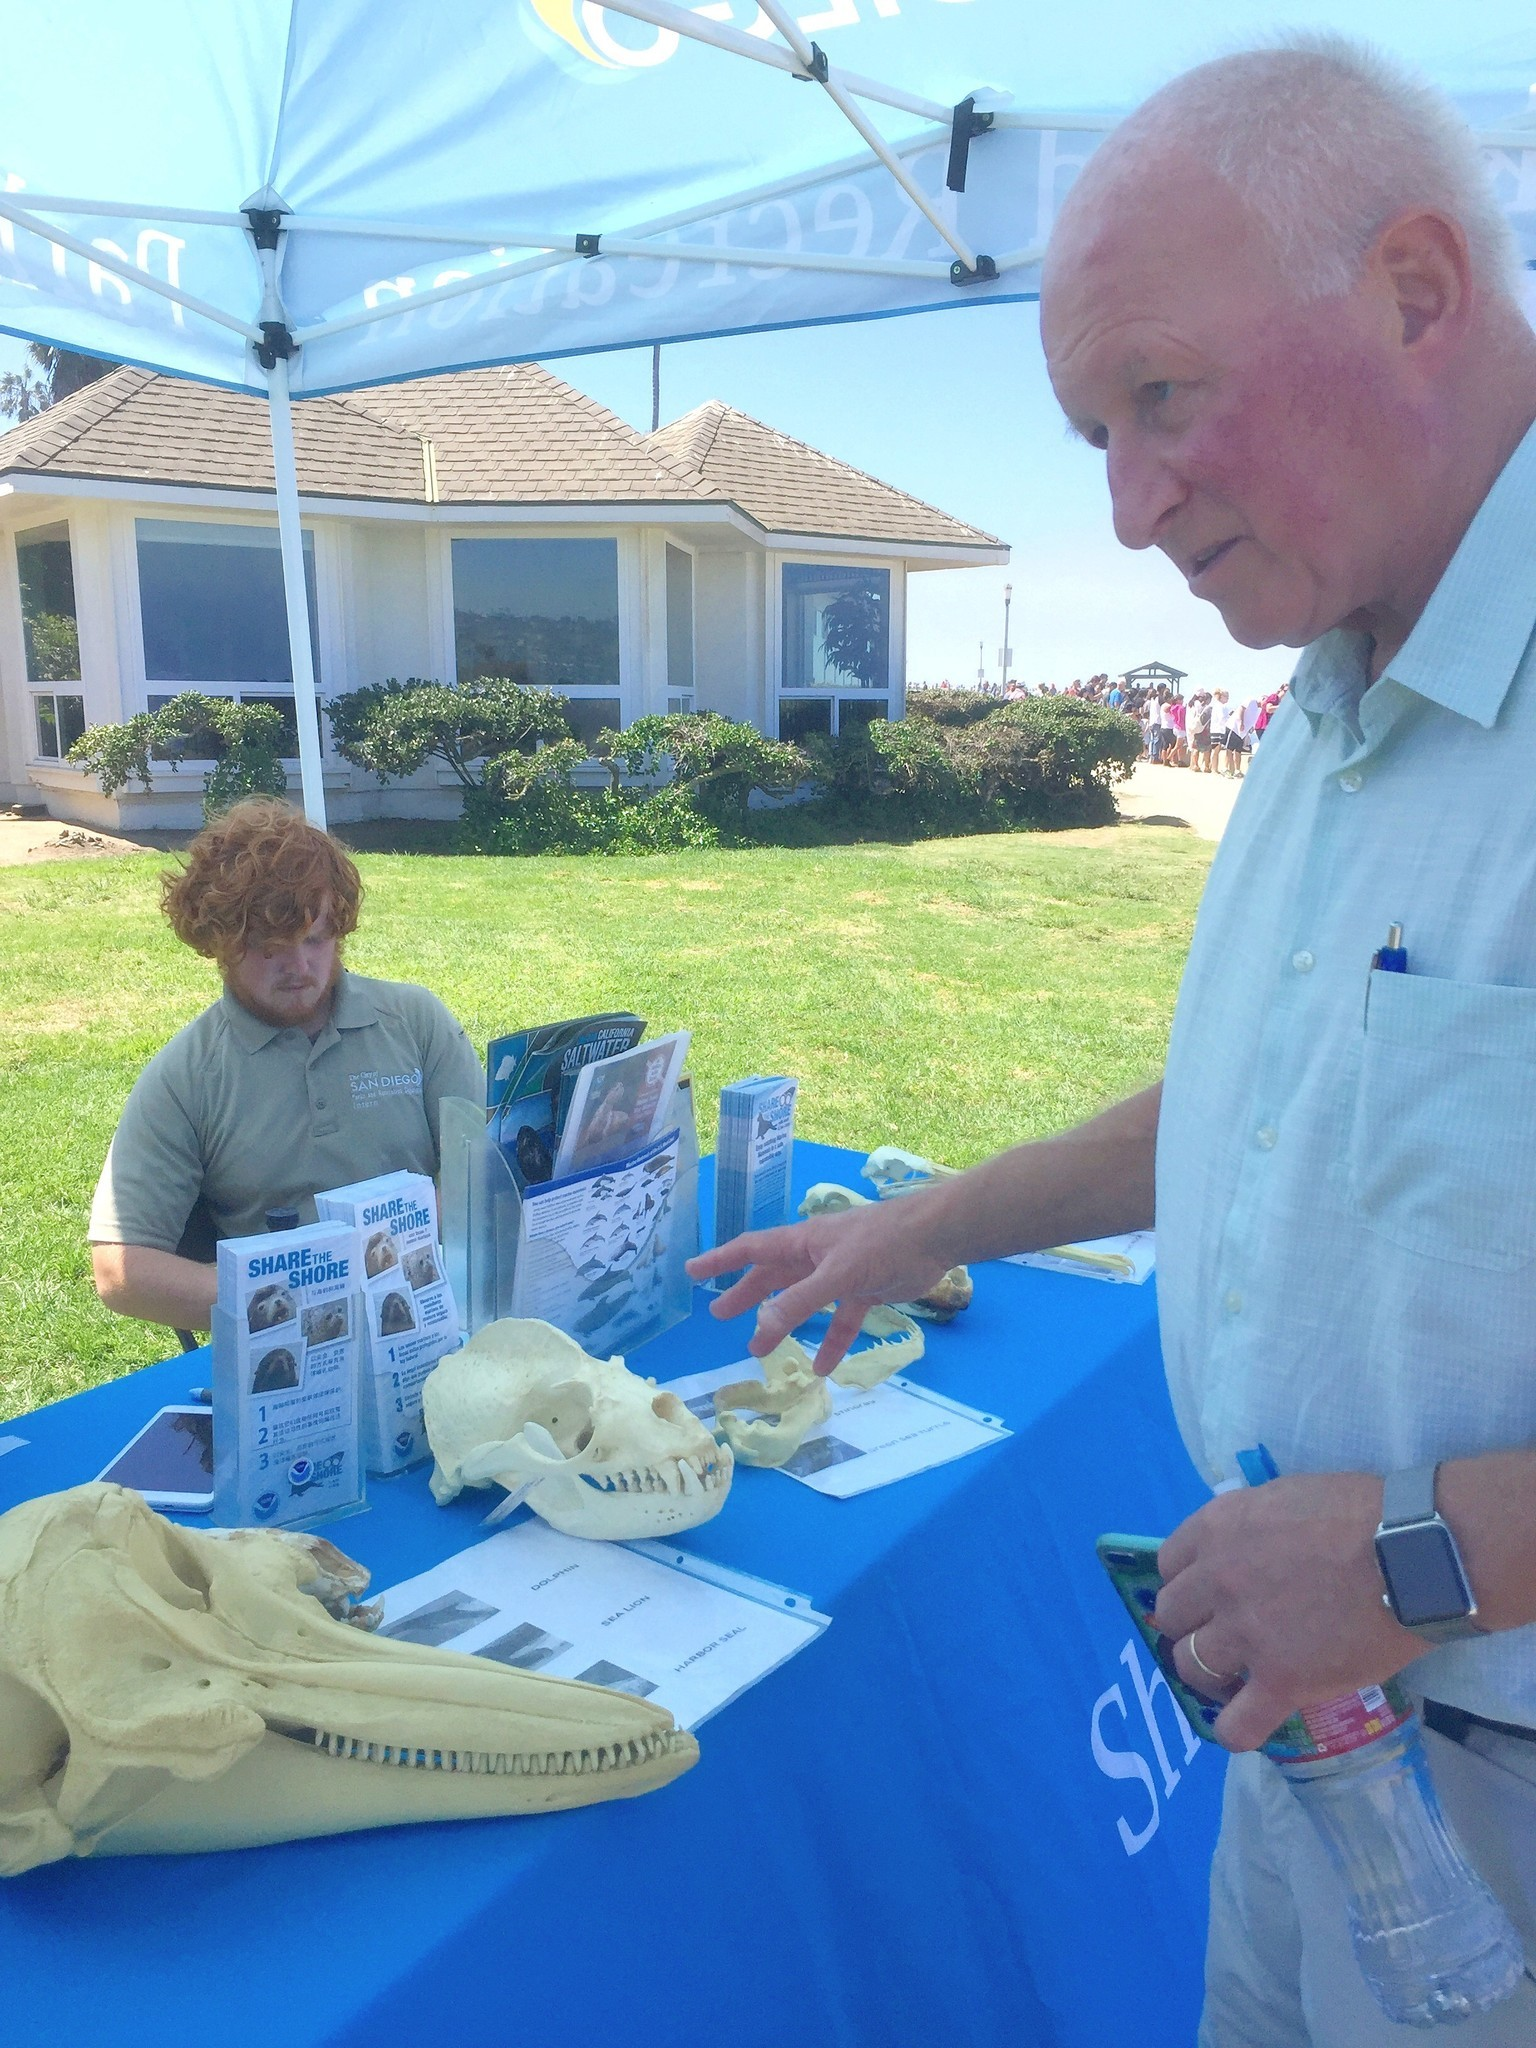 Mugford delivers a lesson in seal biology to interns at a Park & Rec education tent.